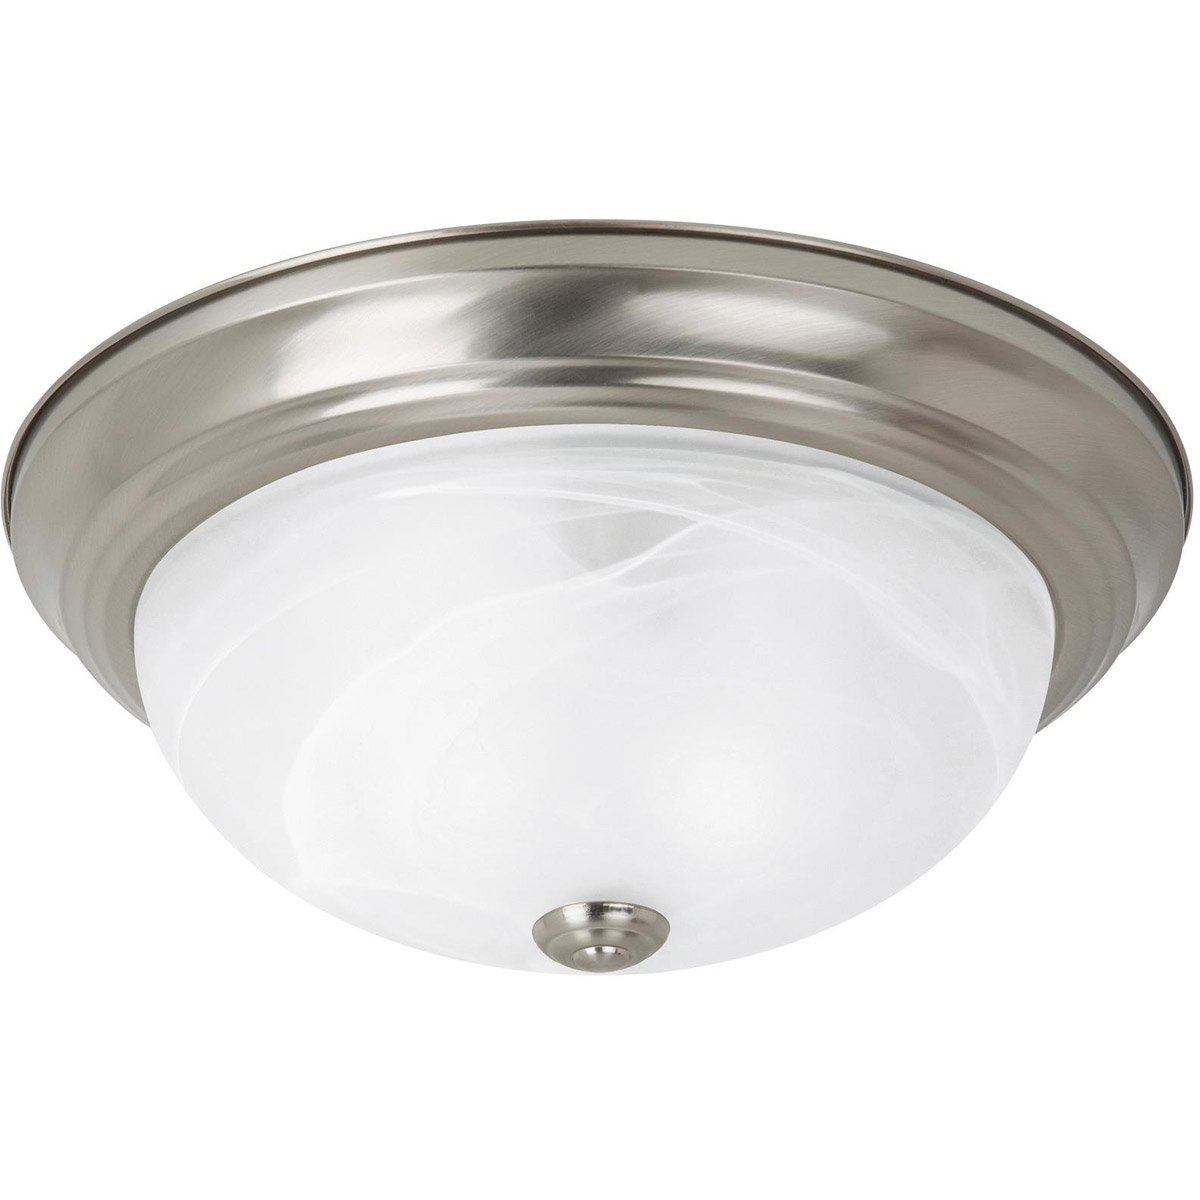 Sea Gull 75942 962 Windgate 2 Light 13 Inch Brushed Nickel Flush Mount  Ceiling Light In Standard